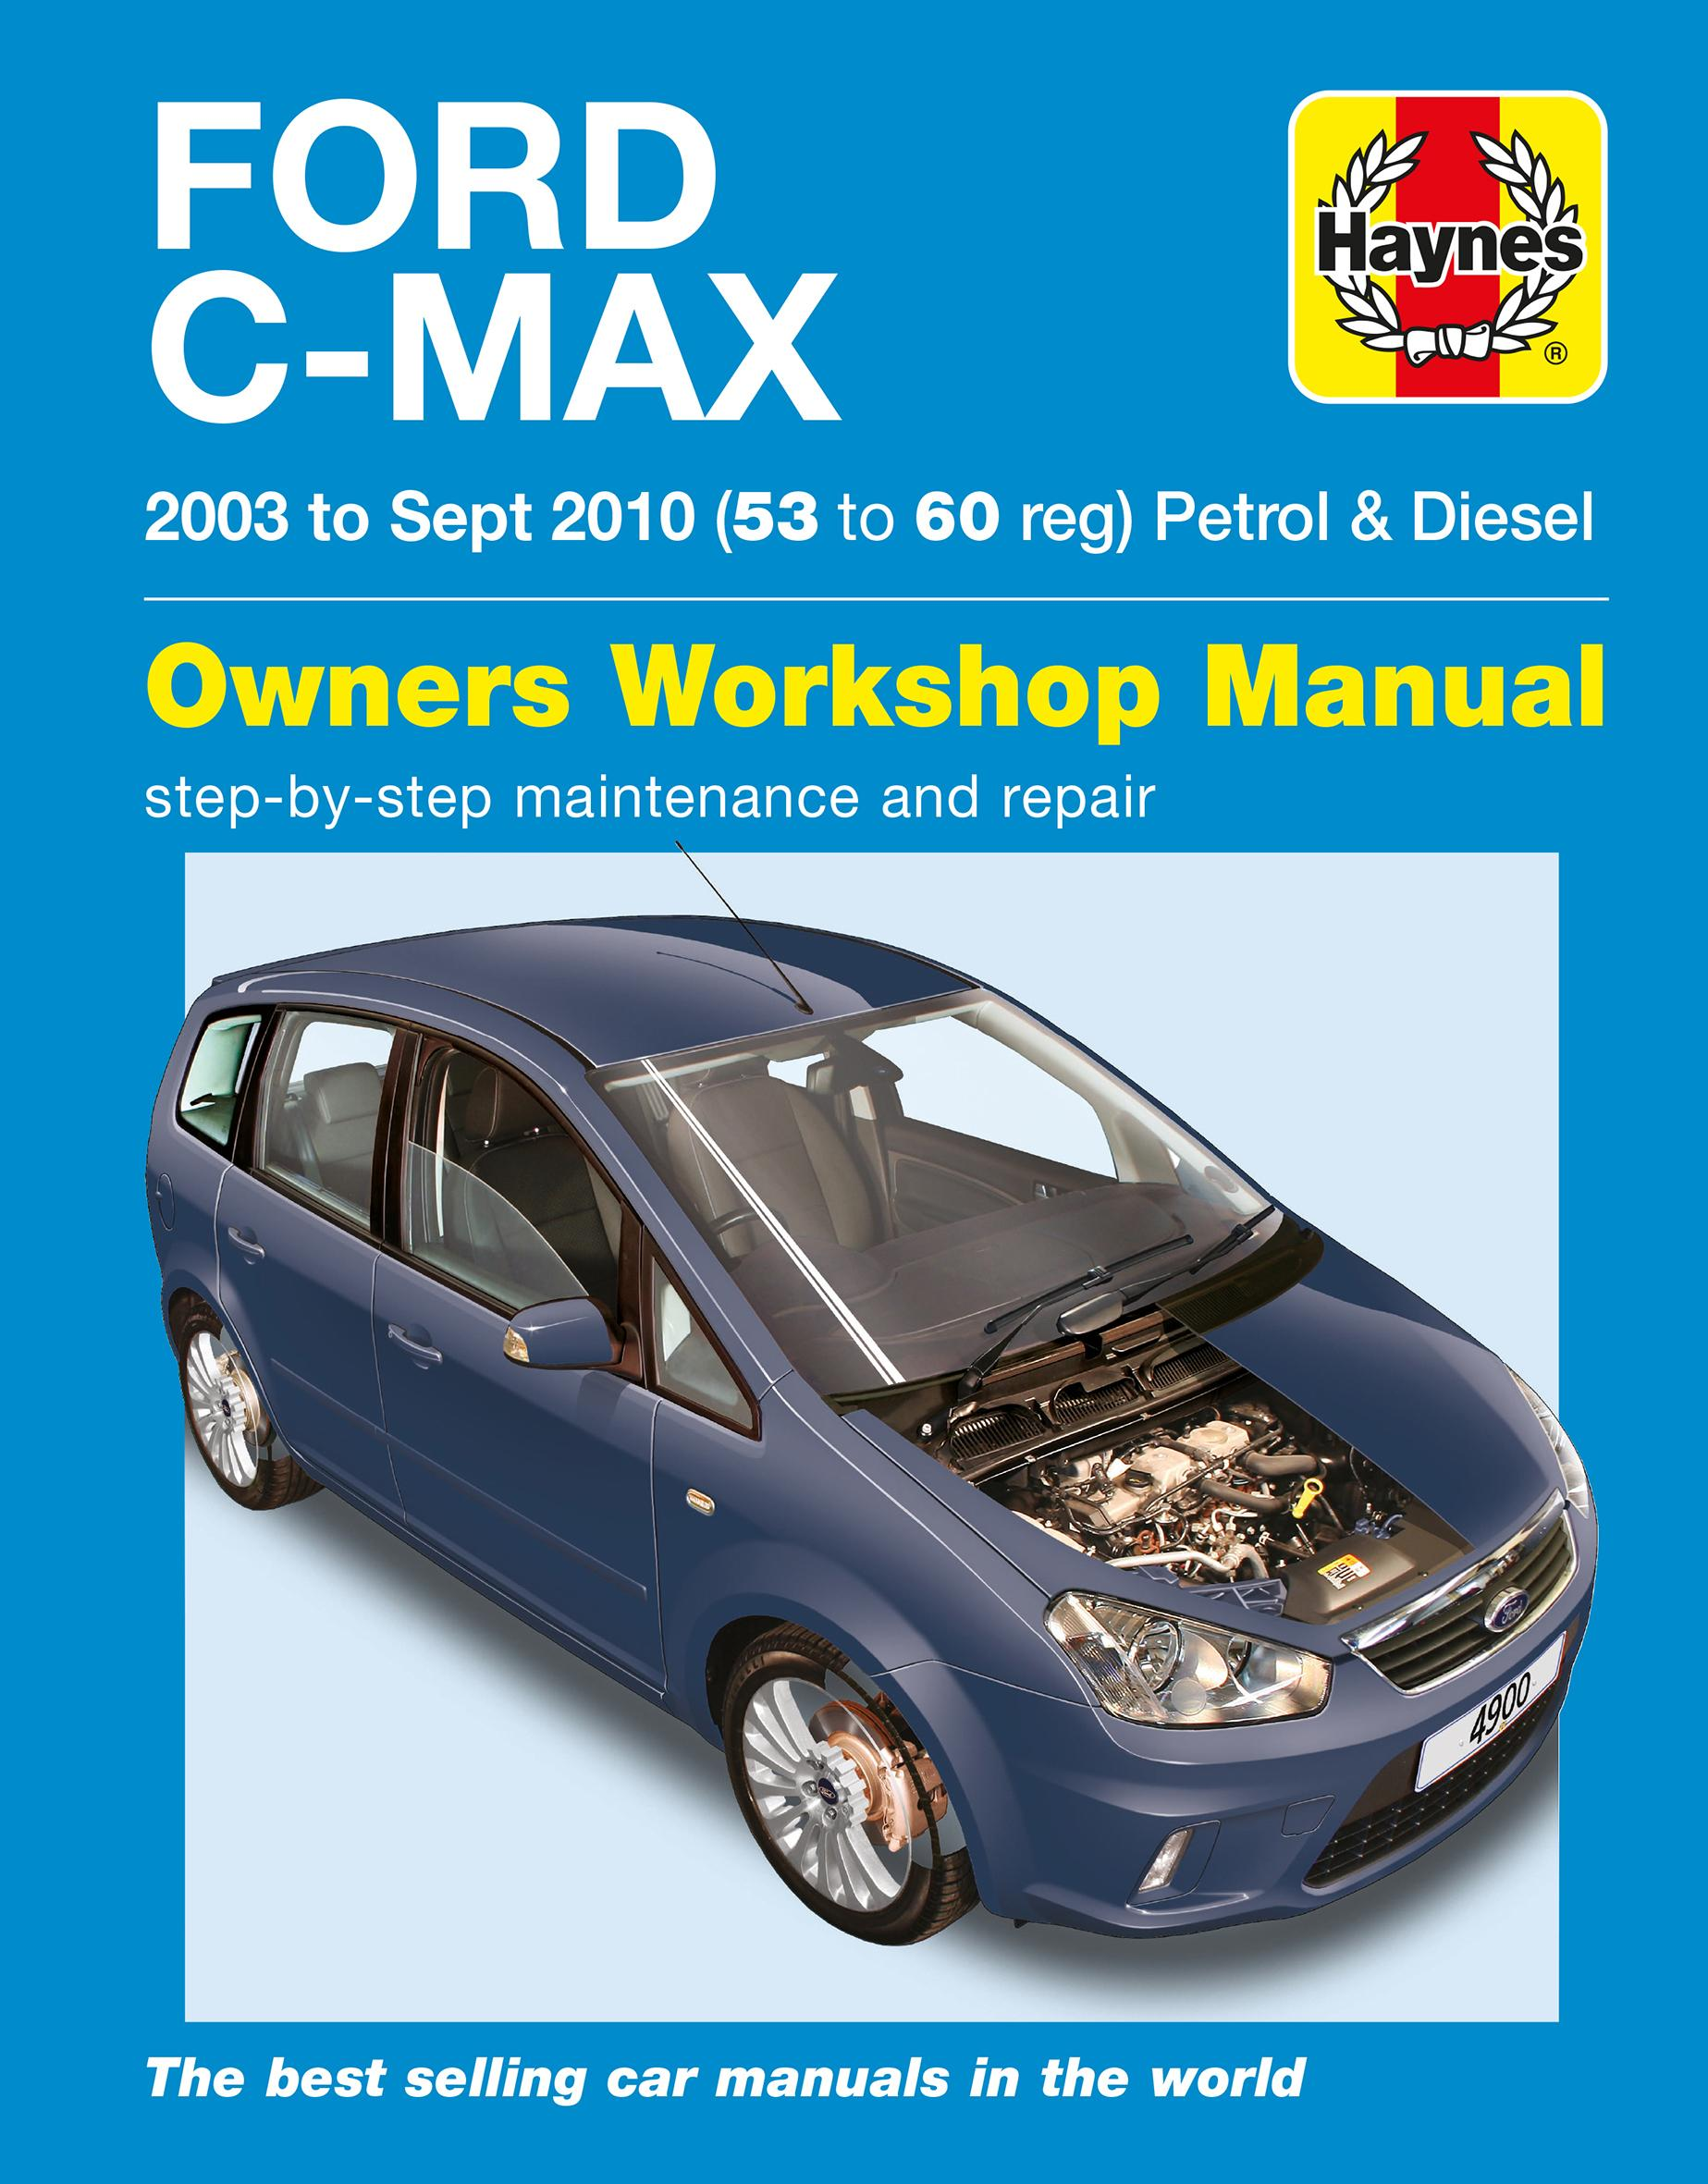 Ford Focus C Max Owners Manual Best User Guides And Manuals 2014 Haynes 03 To10 Rh Halfords Com